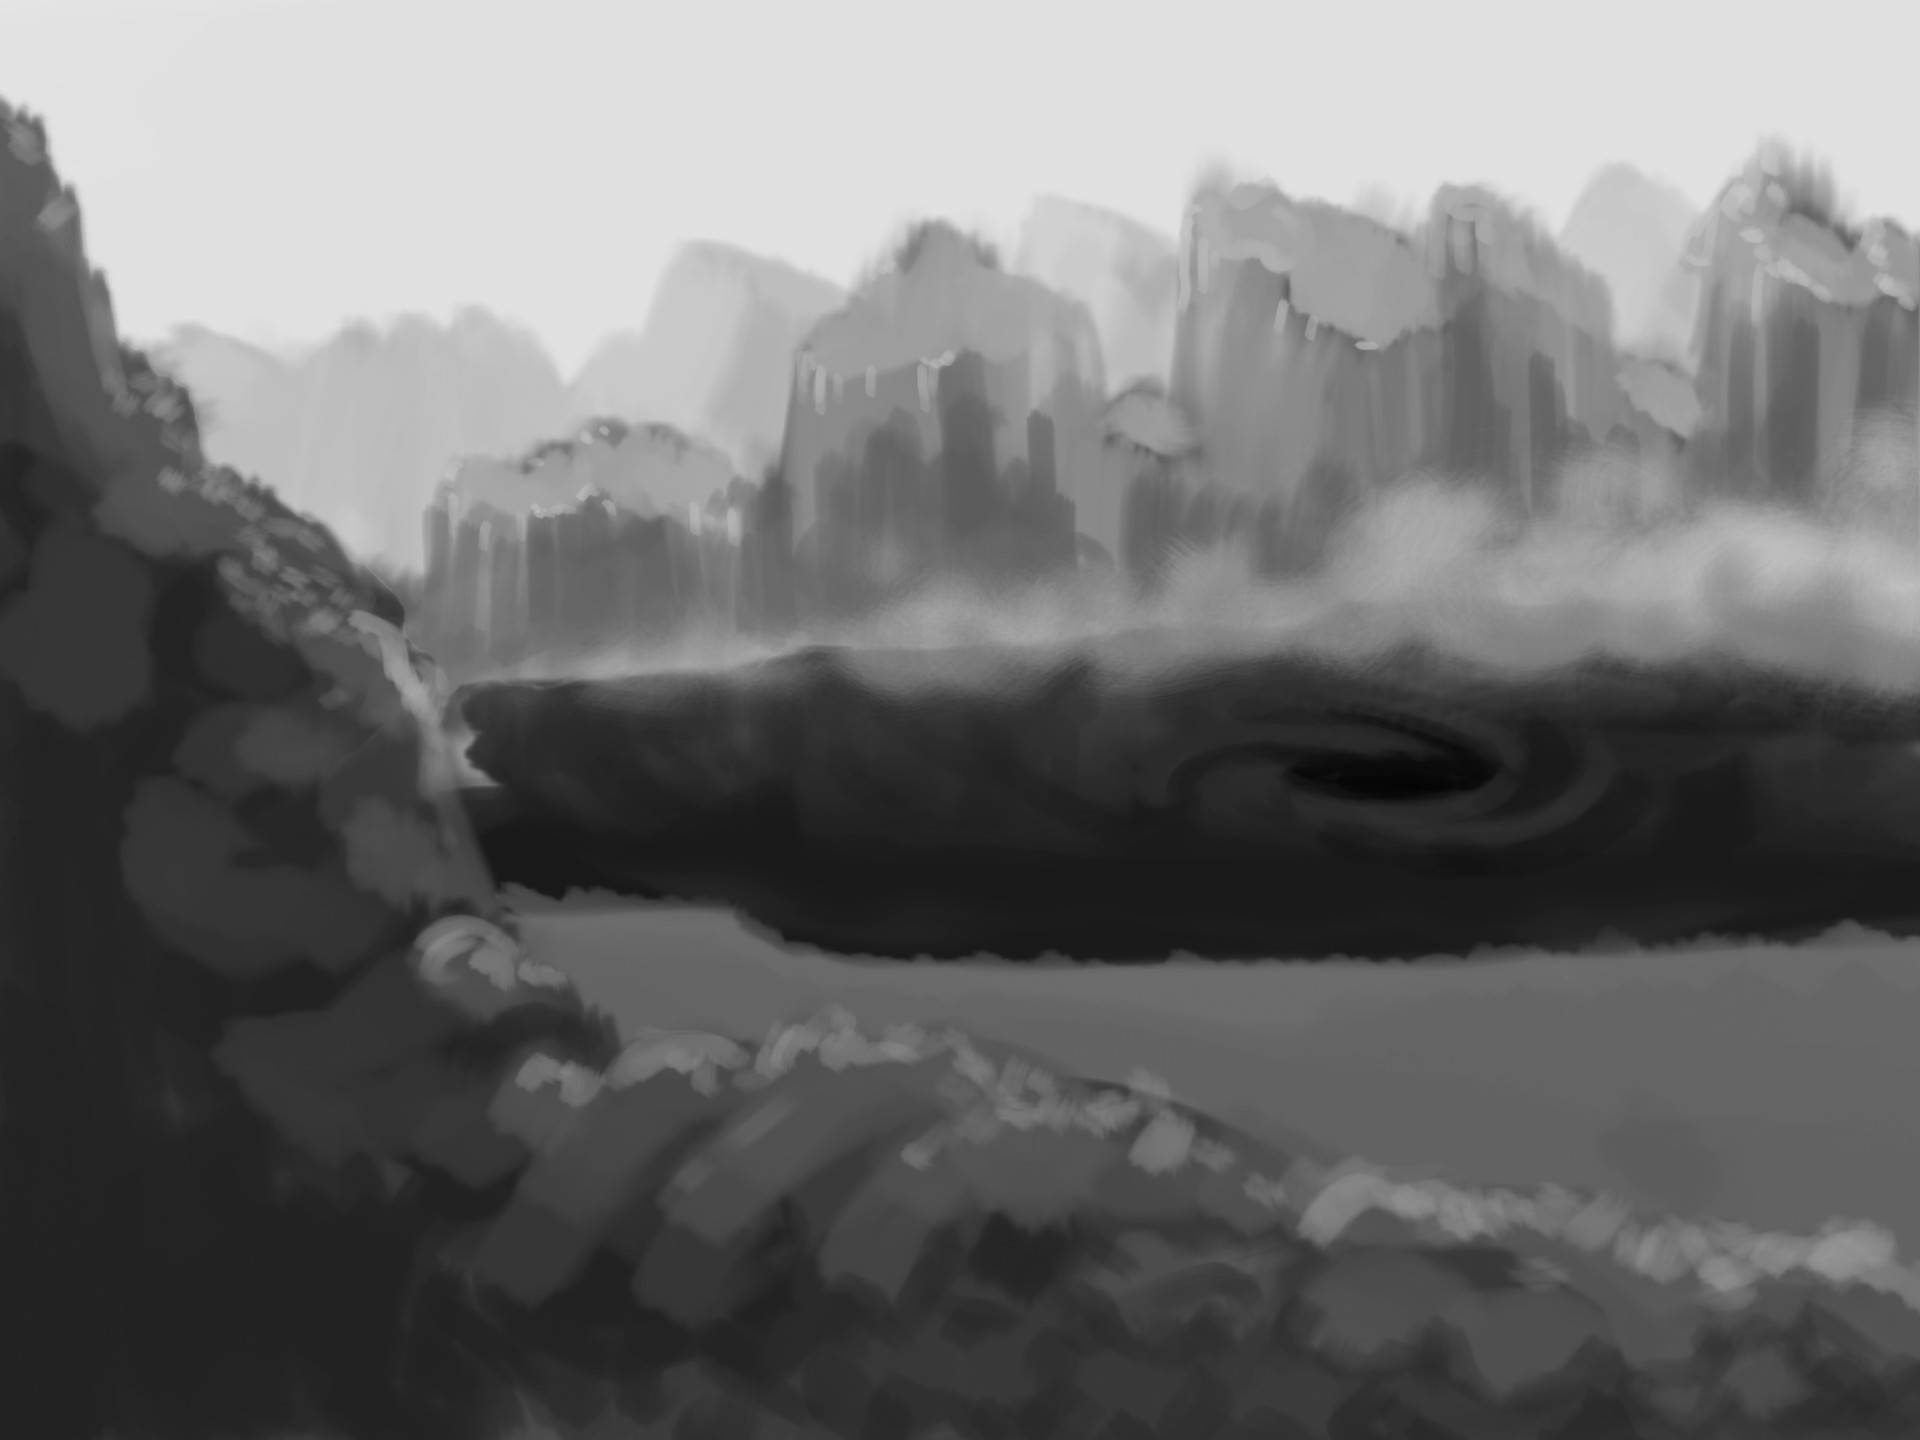 early sketch of the mountains